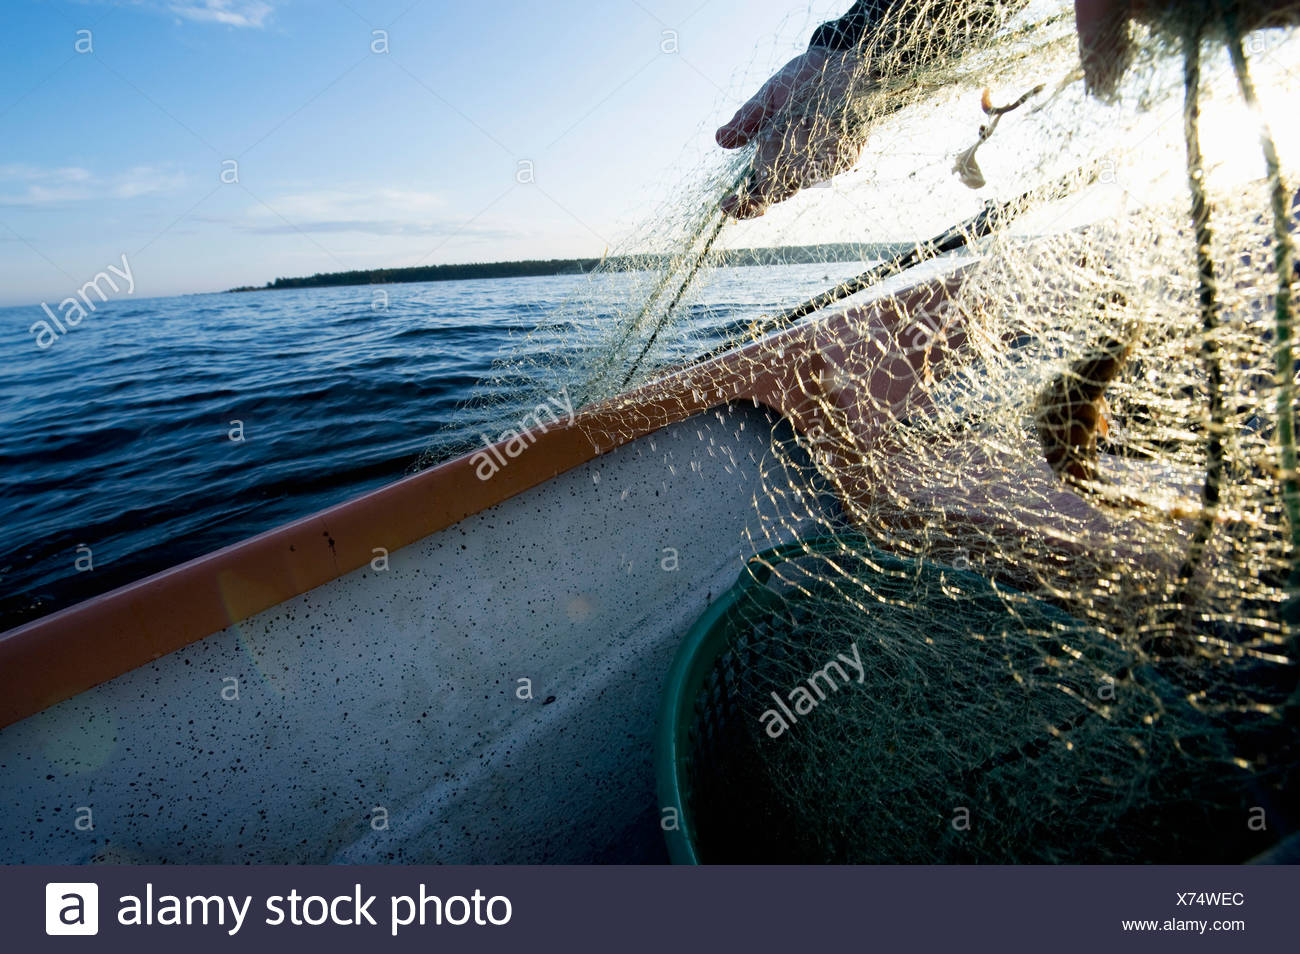 Man bring up fishing net - Stock Image